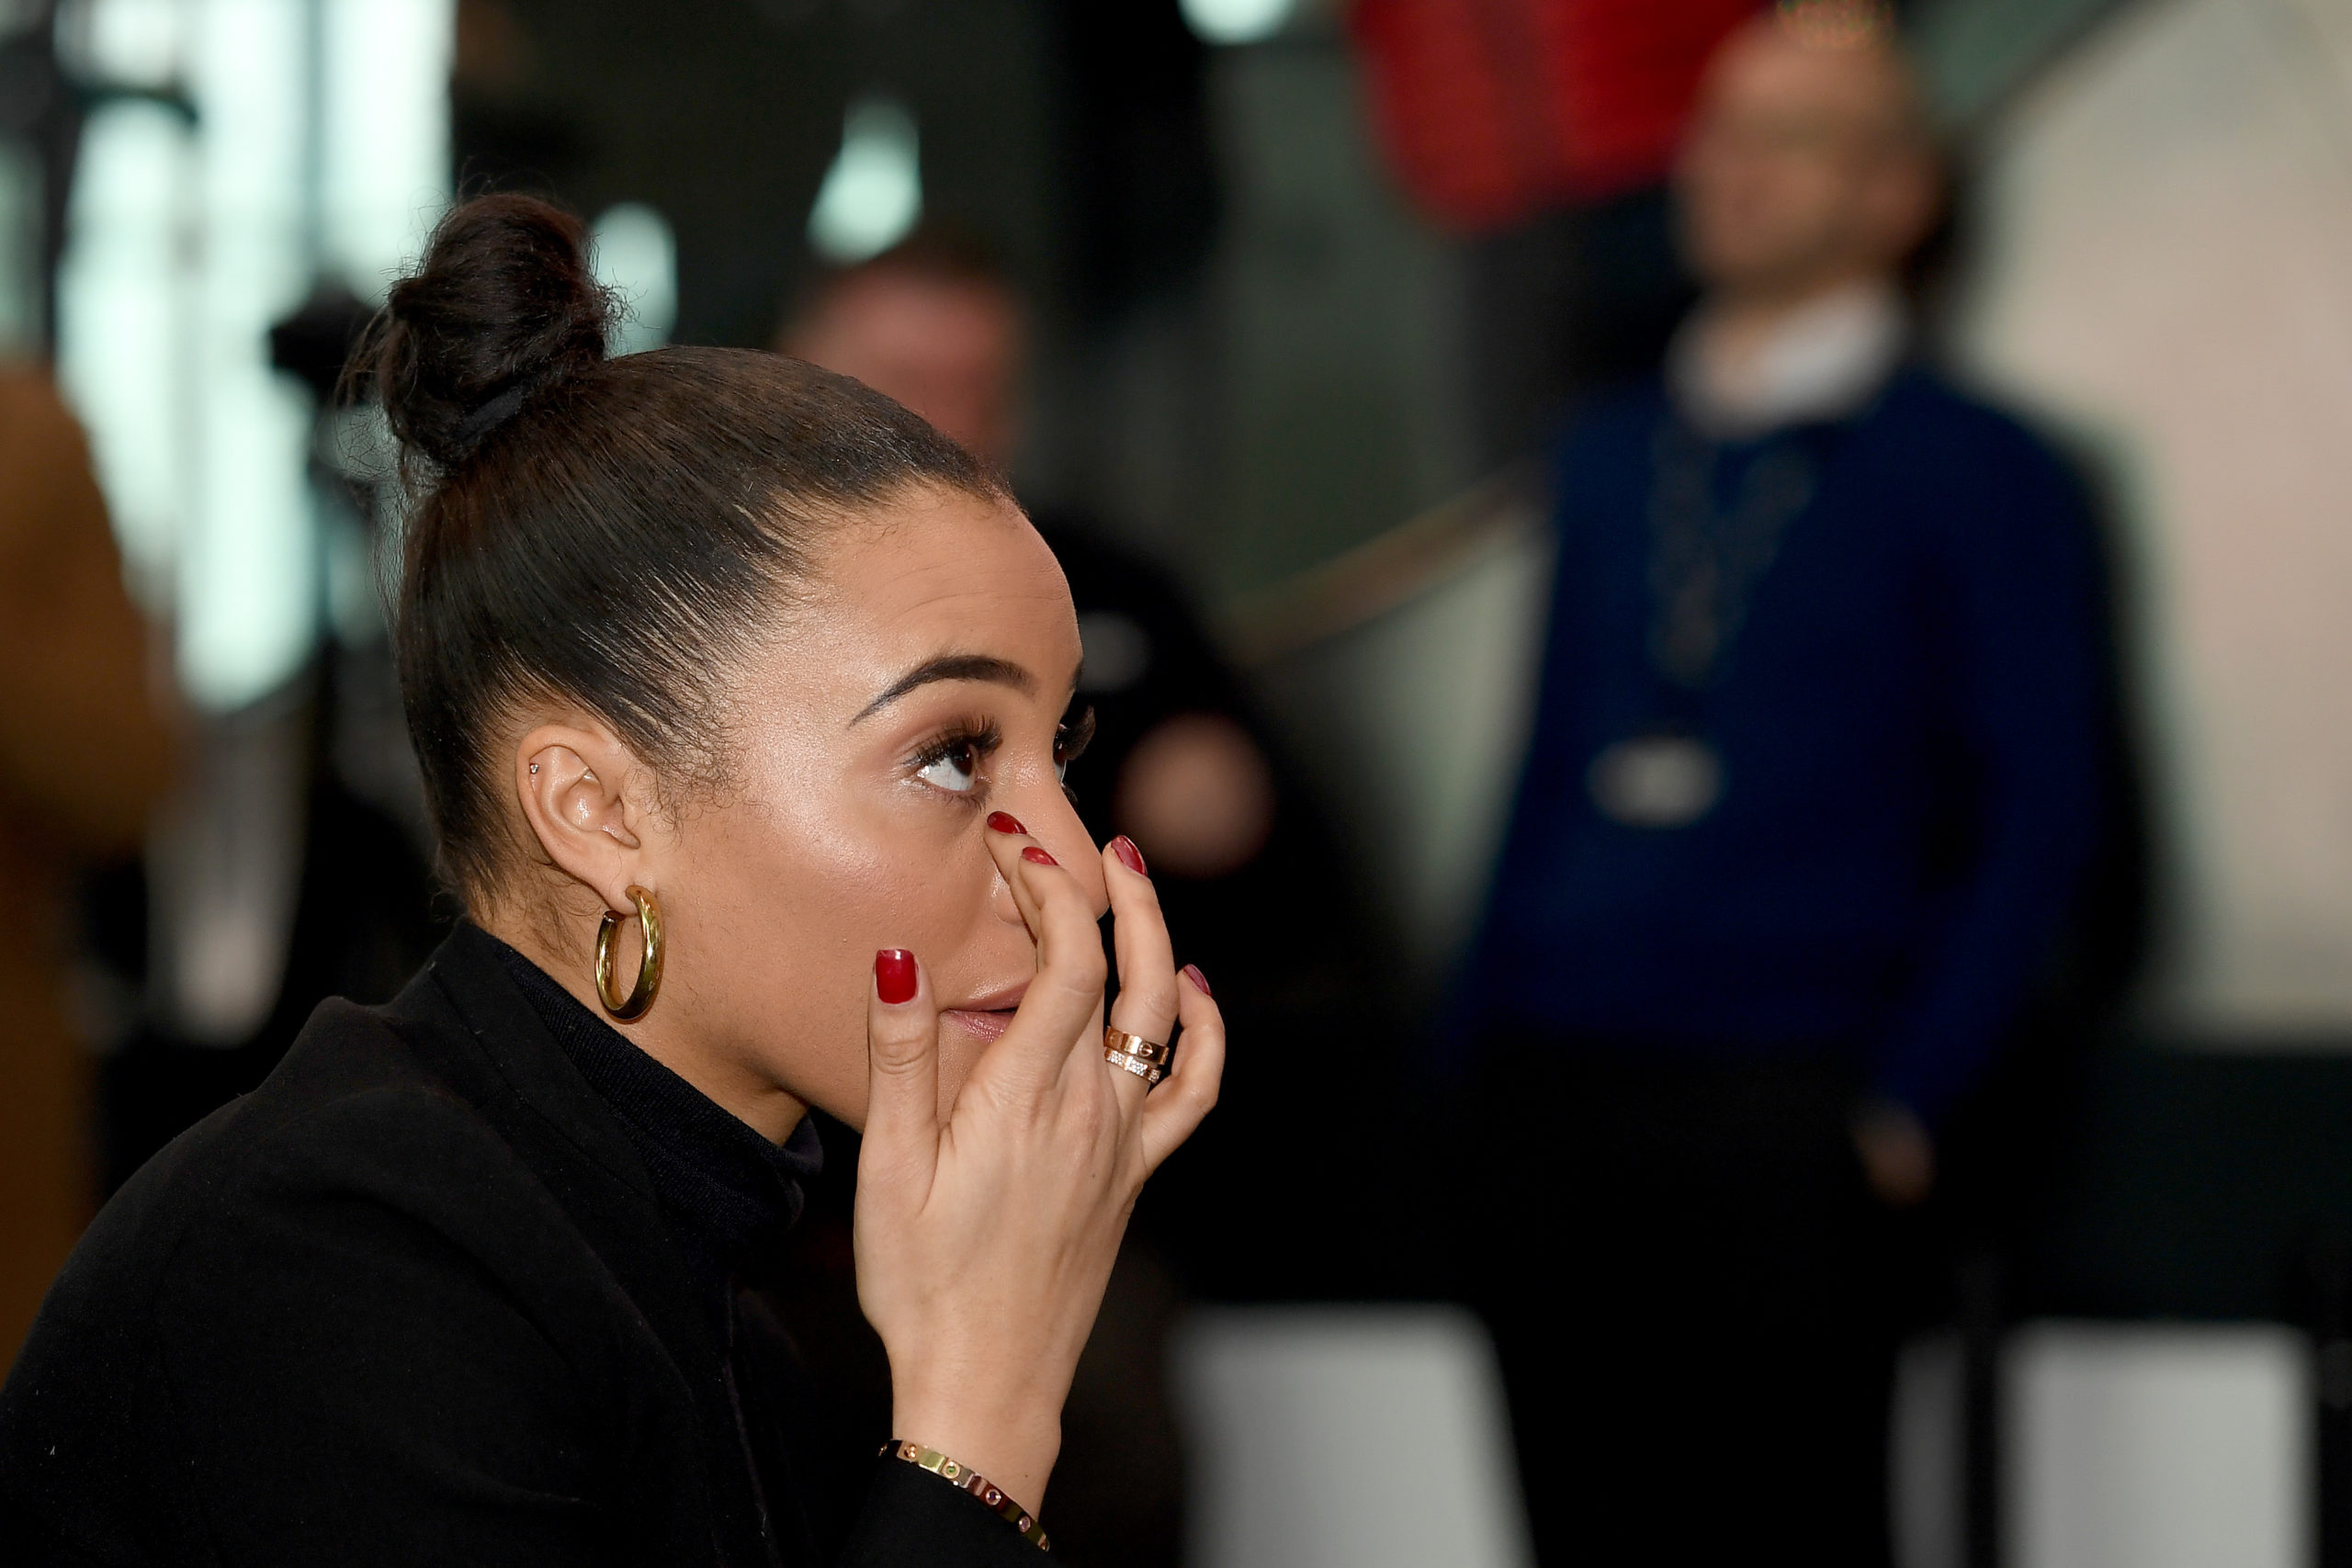 Amal Fashanu, Justin Fashanu's niece, received the the award on his behalf